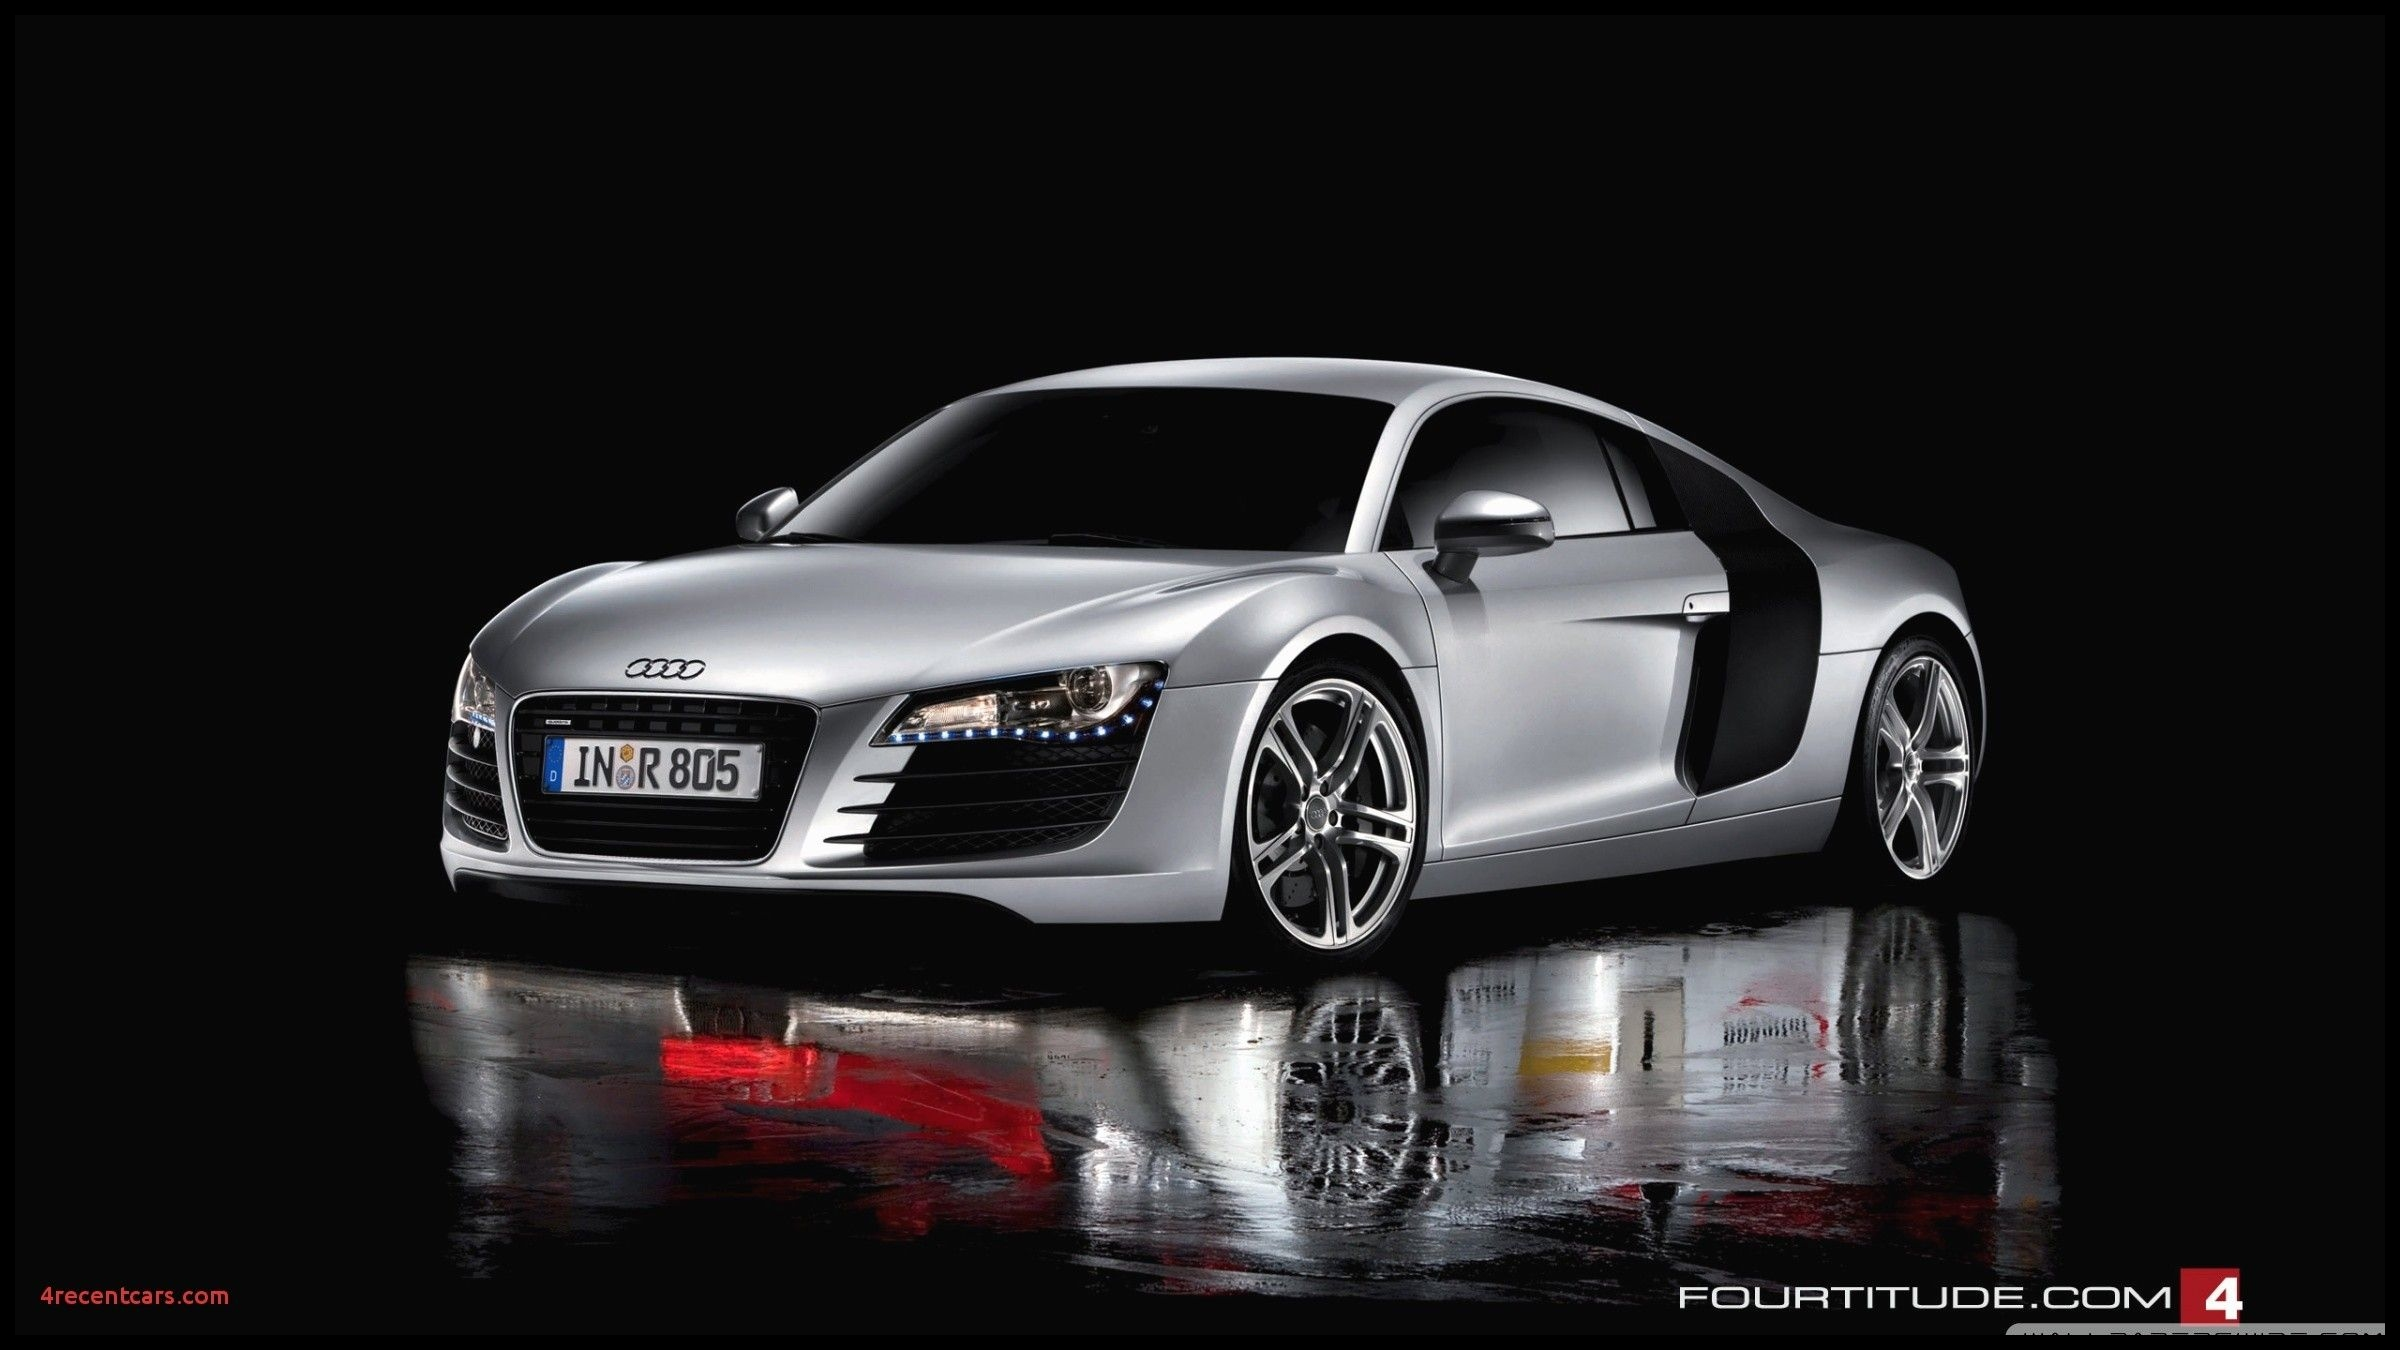 Audi R8 Background Elegant Hd Wallpaper for Pc Latest New Od Car Wallpaper Beautiful Audi R8